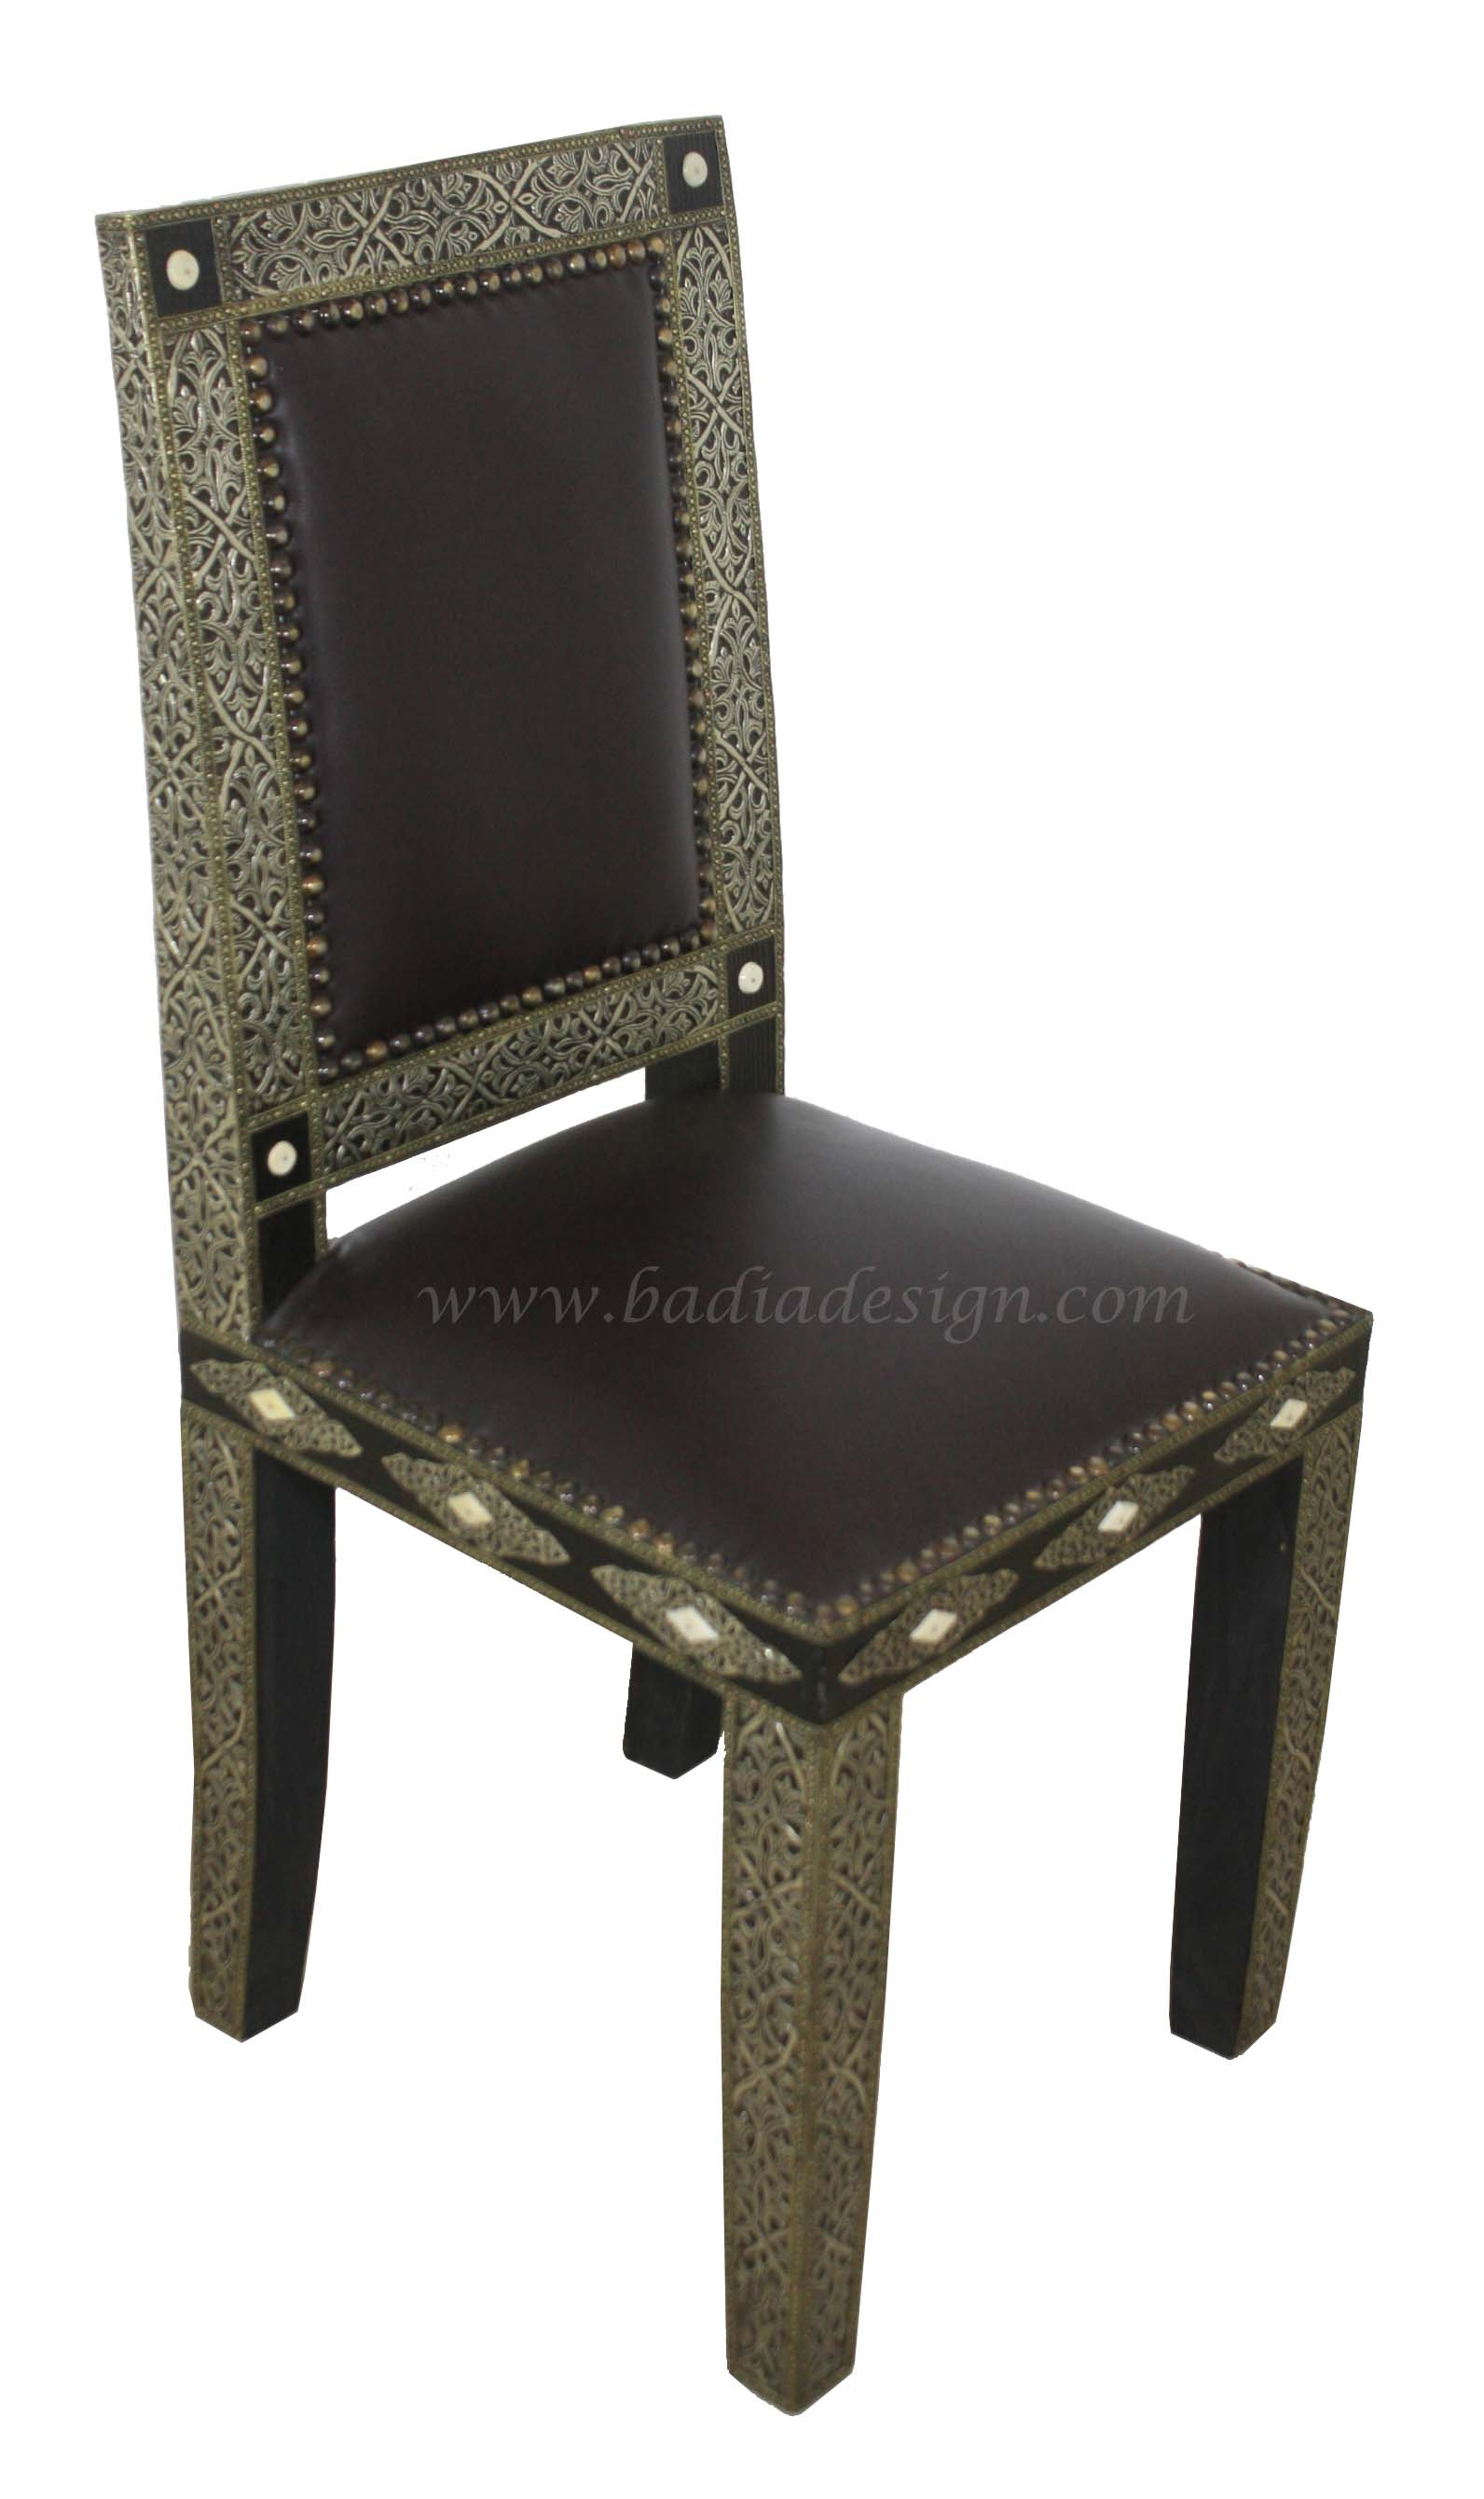 moroccan-metal-and-bone-chair-with-leather-ml-ch030-2.jpg